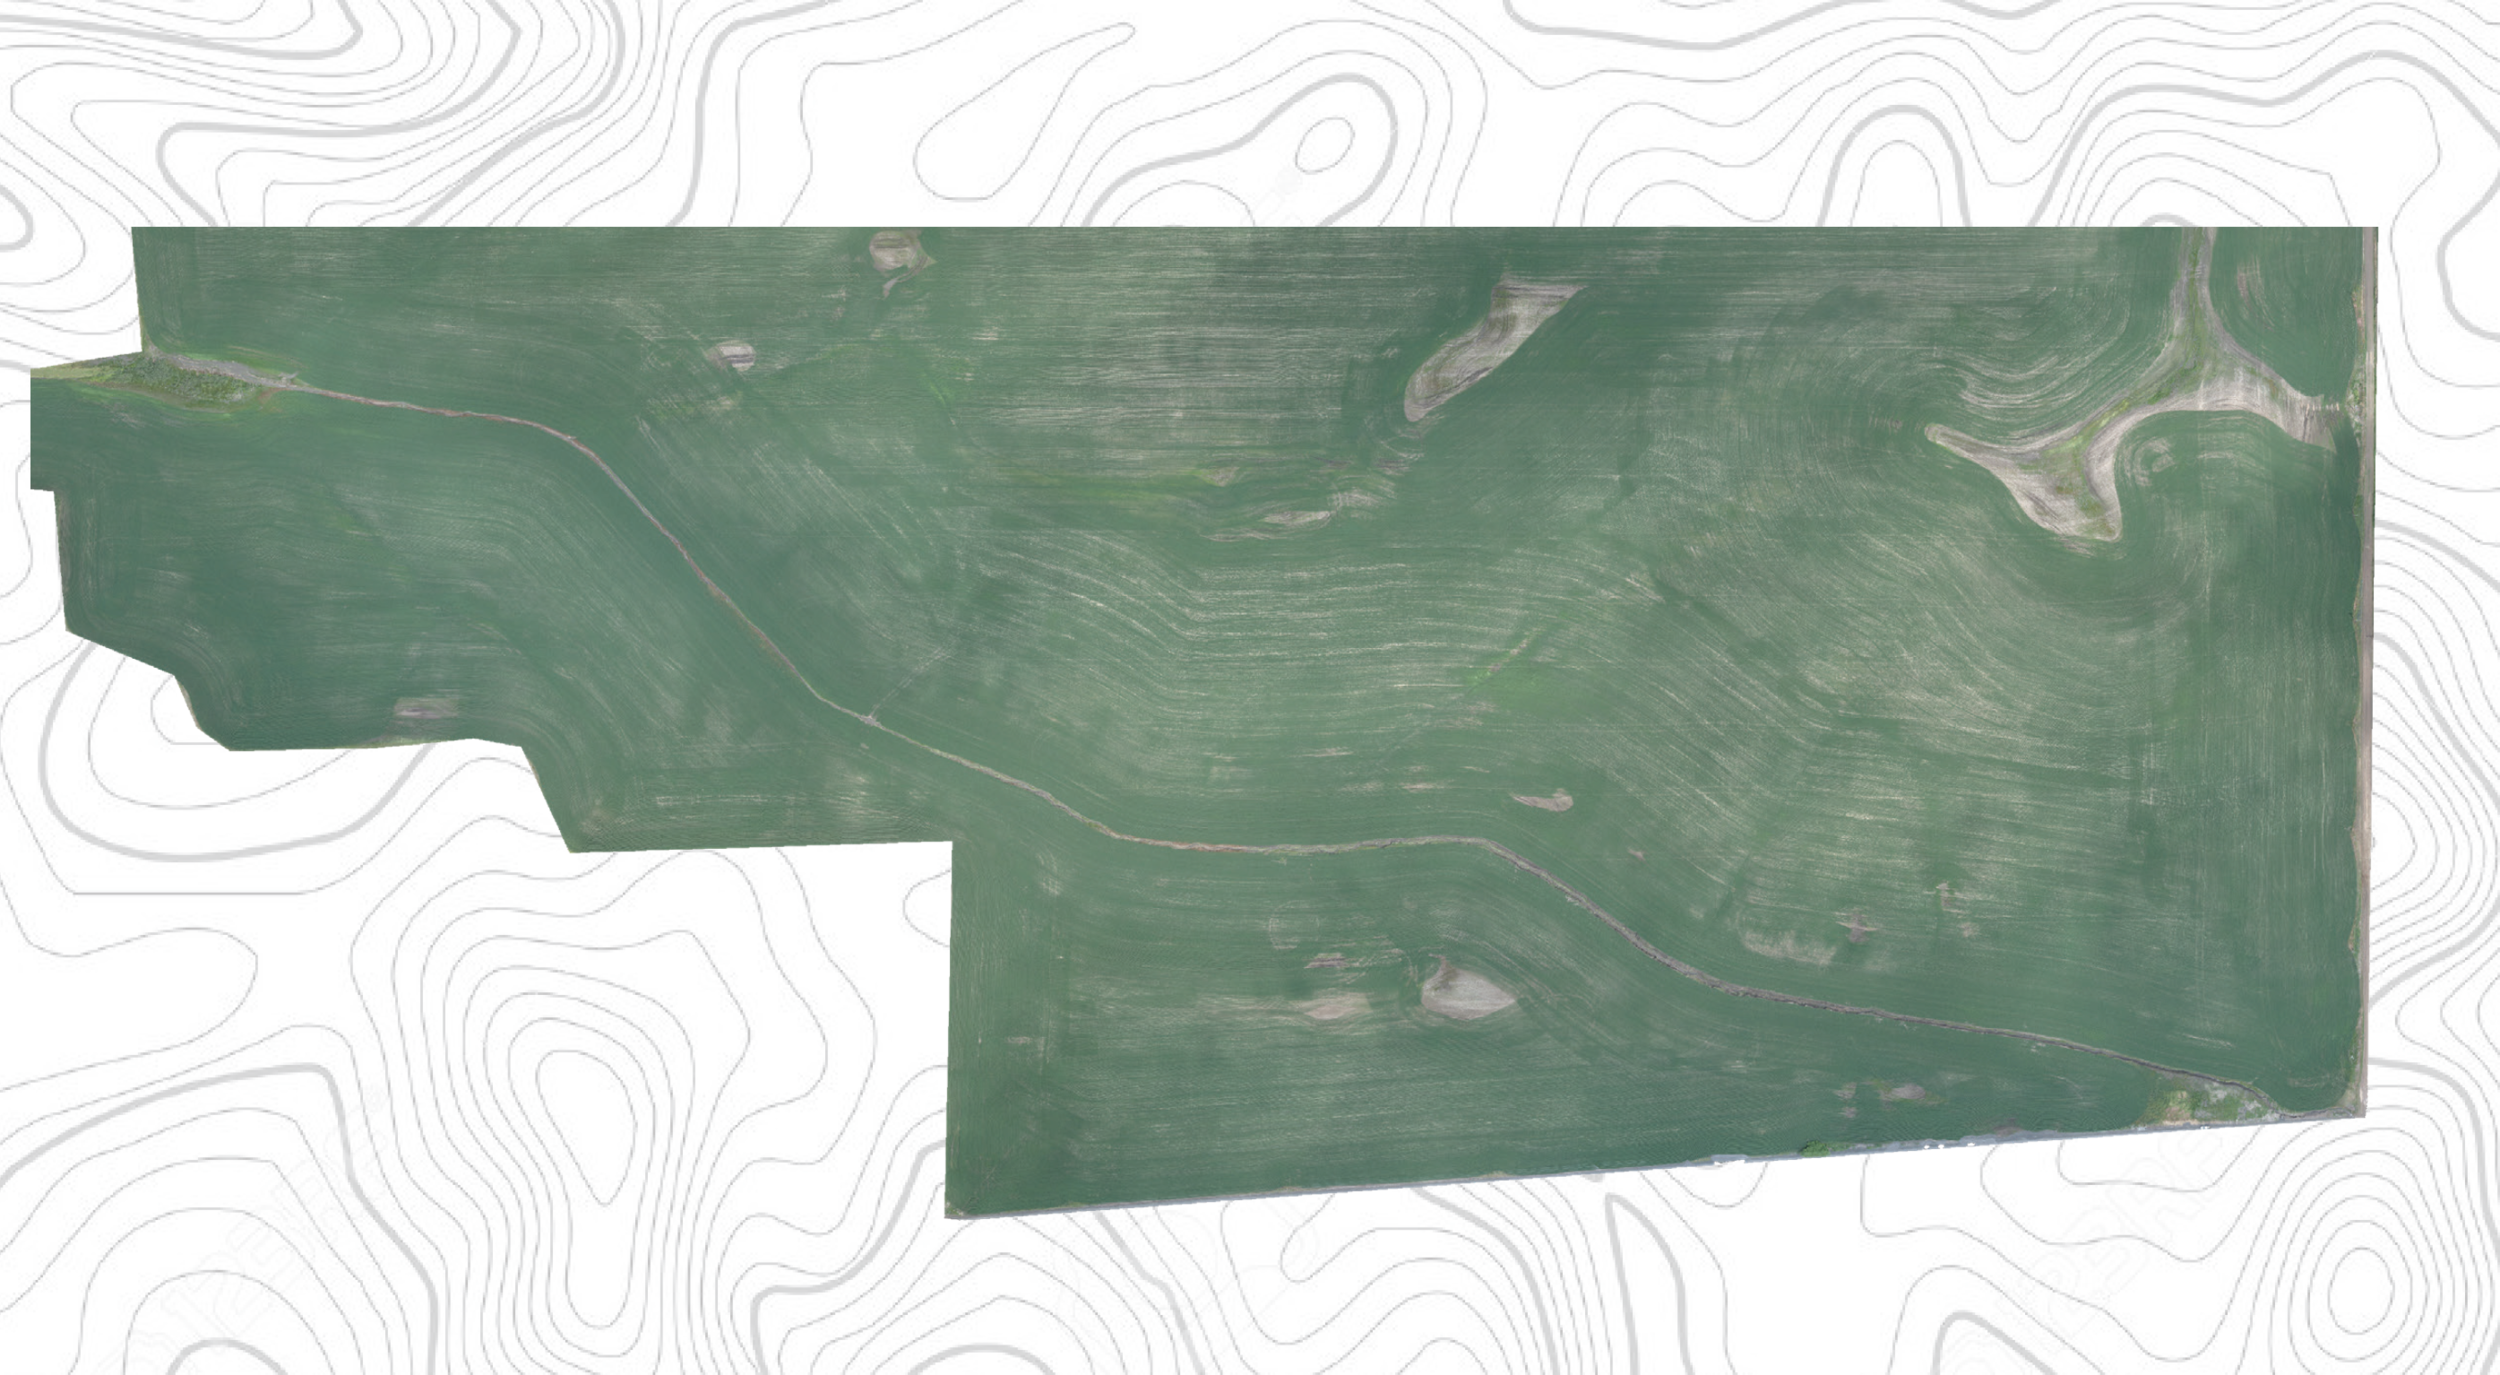 Your Farm in a Photo - This single image is stitched together from hundreds of individual images taken in succession. A larger and more detailed version of this type of image is available upon request.